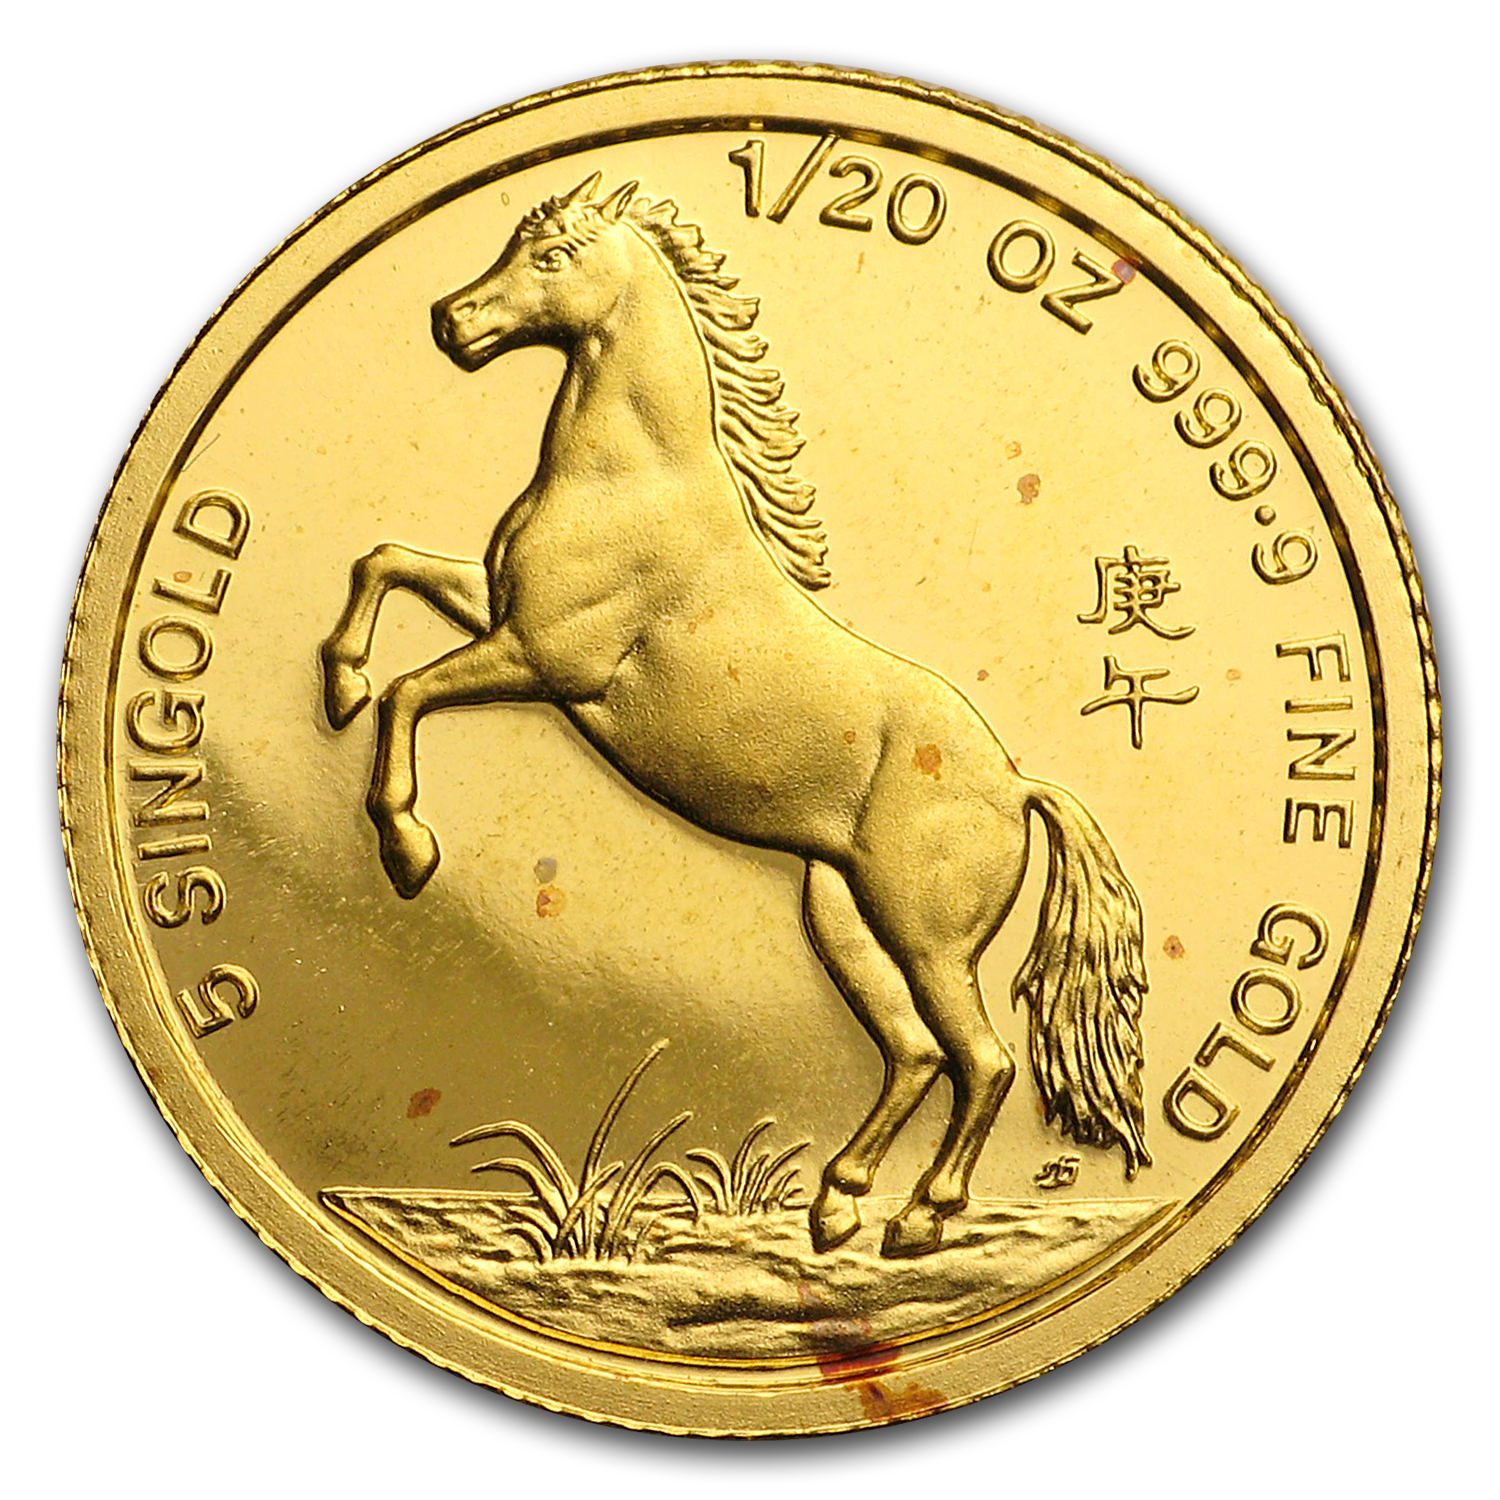 1990 Singapore 1/20 oz Proof Gold 5 Singold Year of the Horse